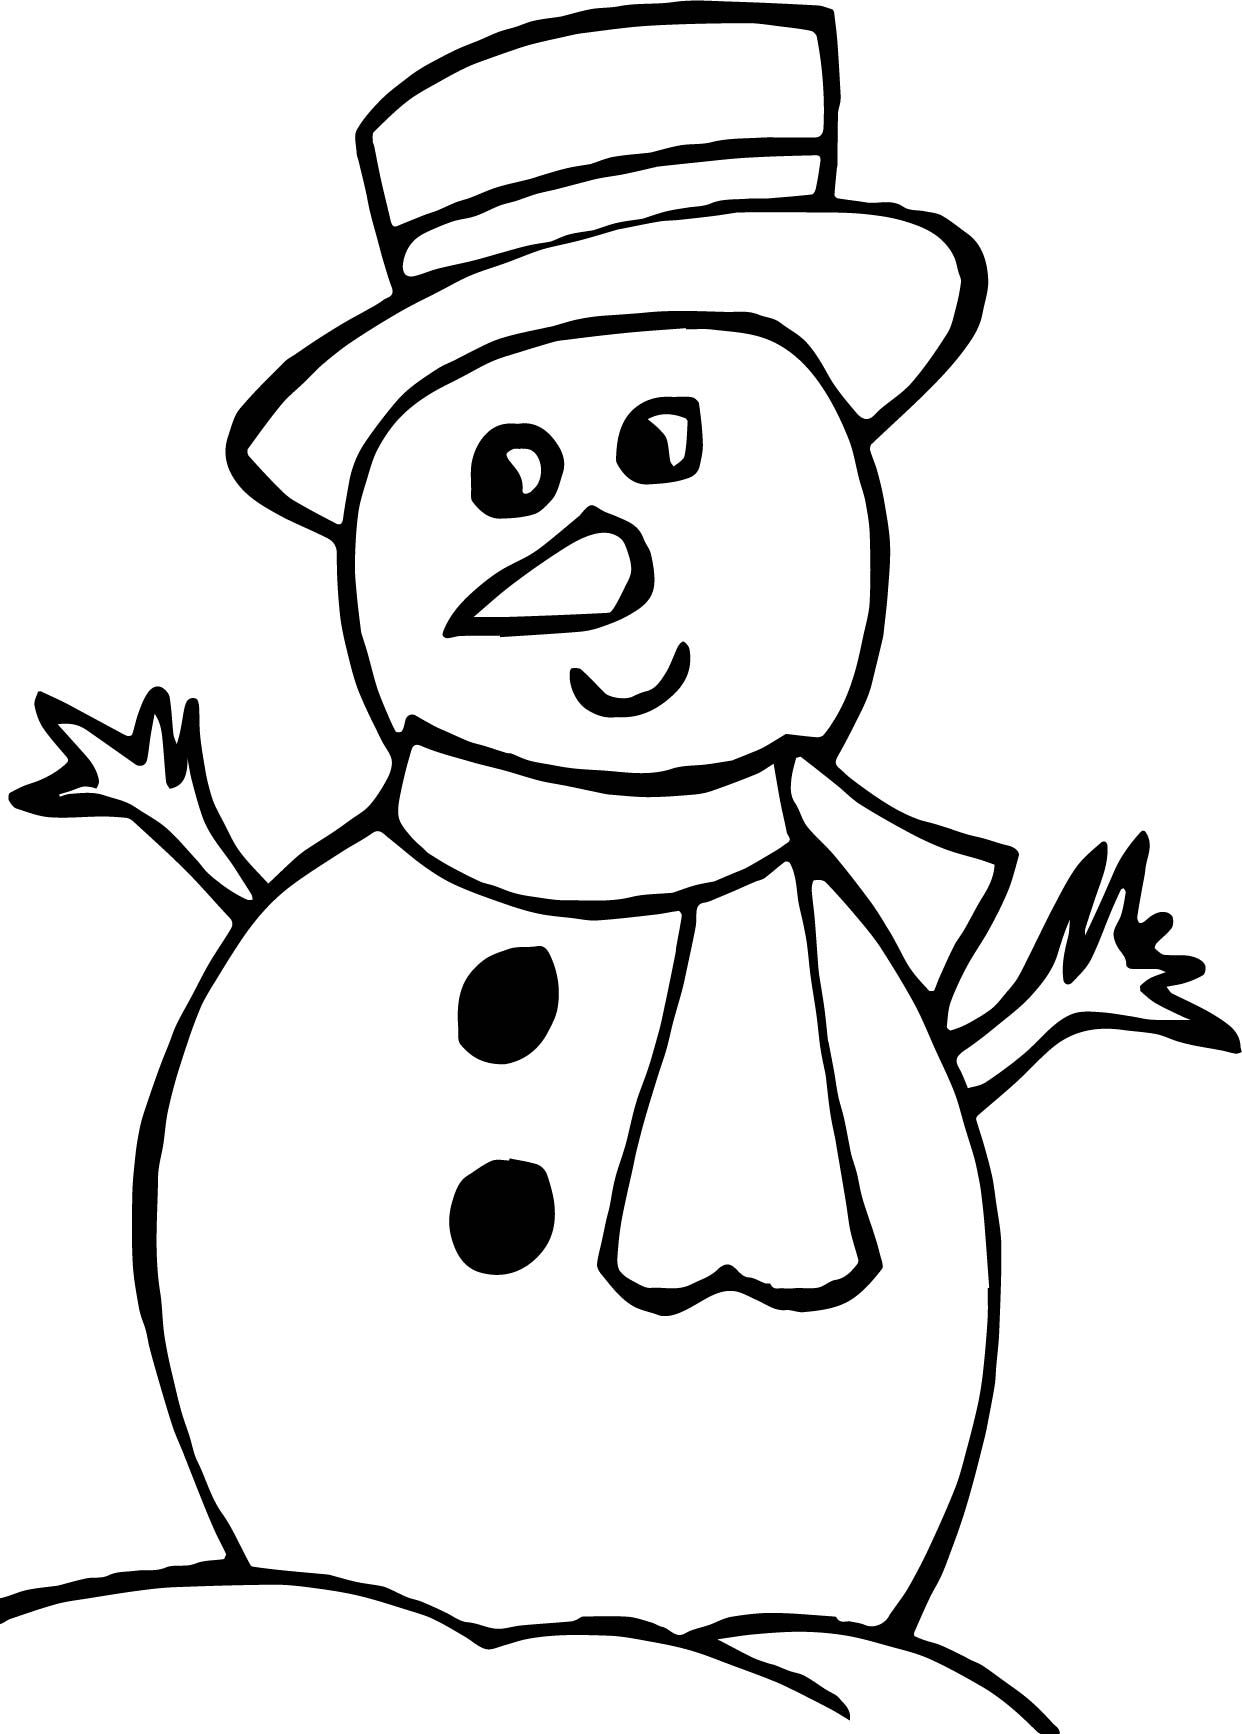 awesome Winter Looking Snowman Coloring Page Snowman